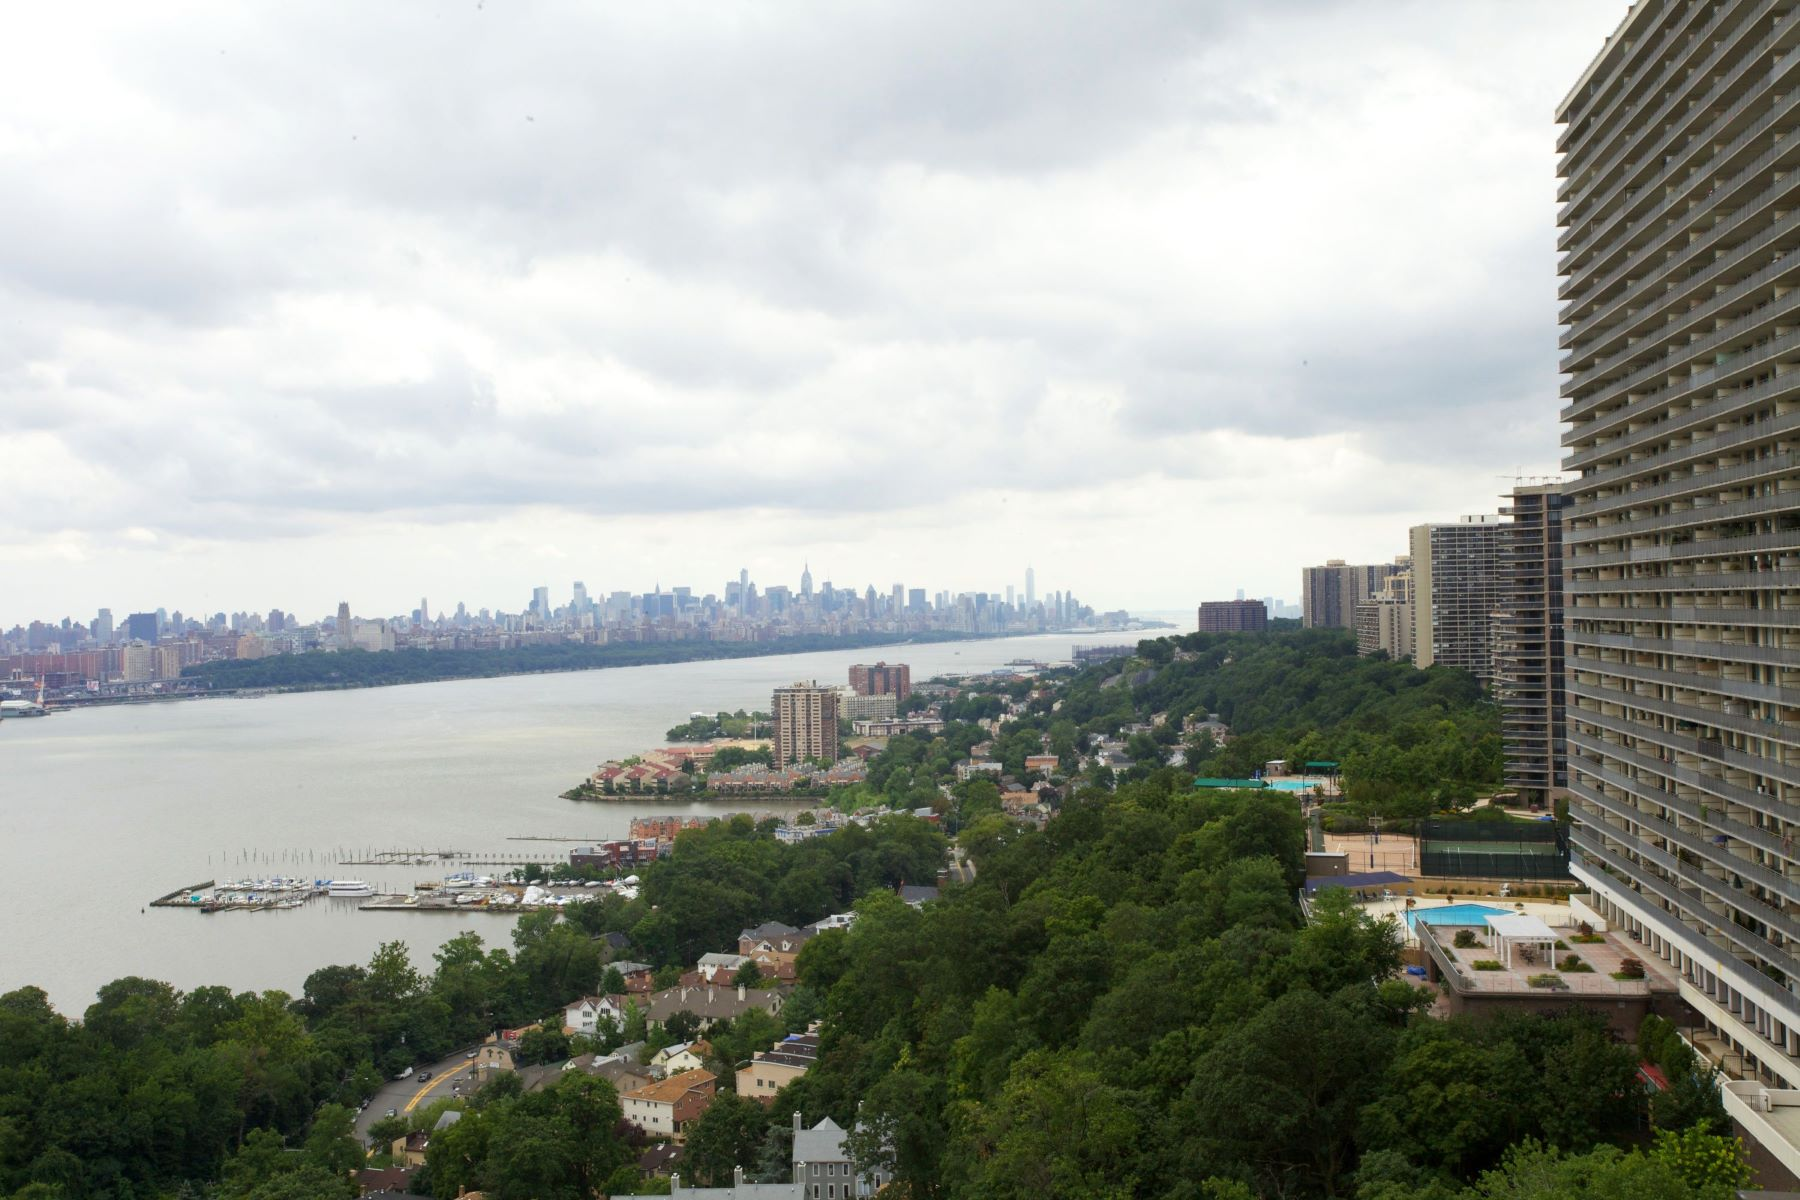 Condominium for Sale at River Ridge Condo for Sale 200 Old Palisade Road 11-12F Fort Lee, New Jersey, 07024 United States